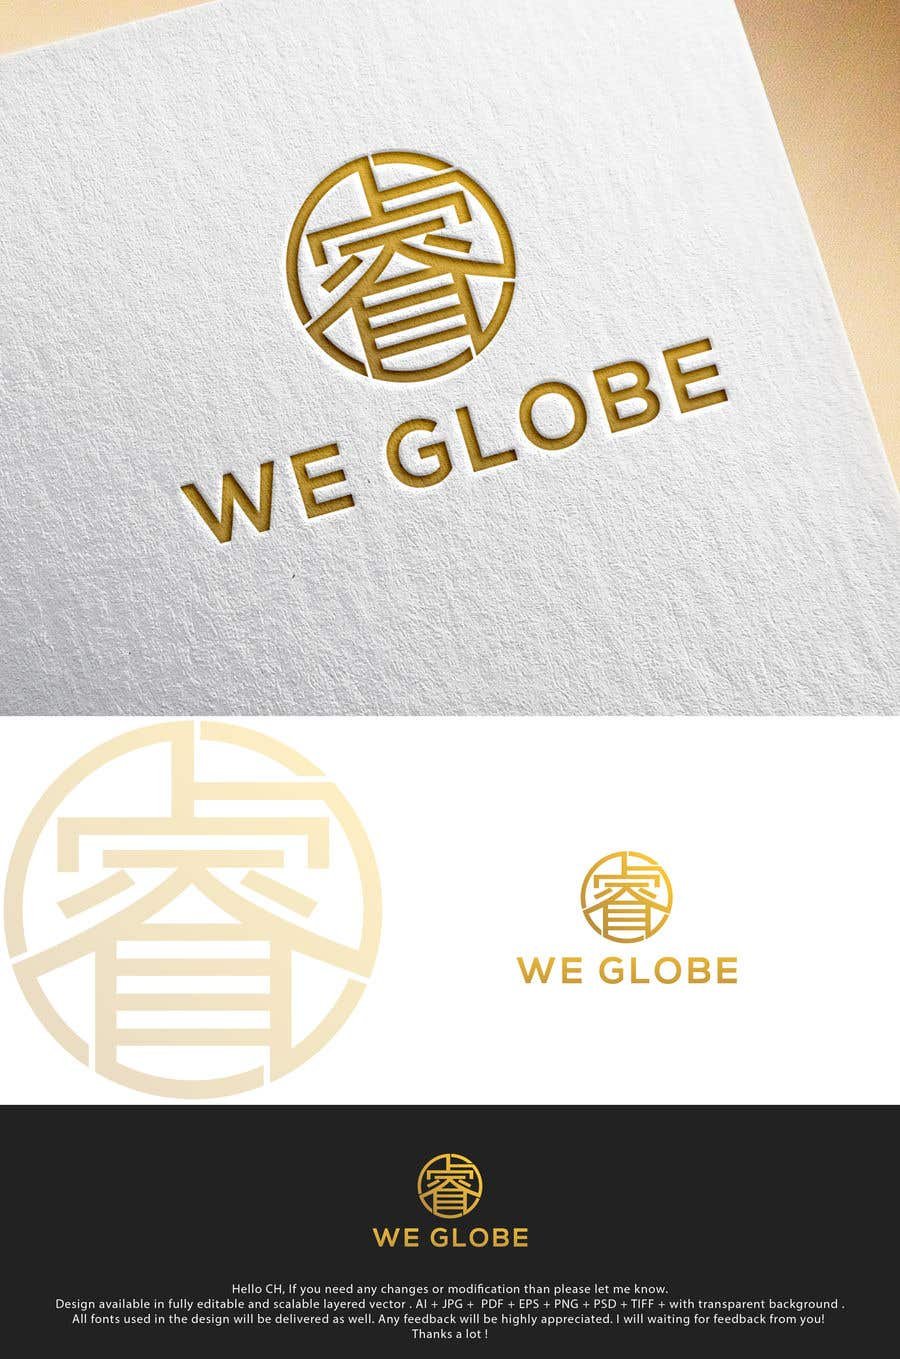 Contest Entry #308 for English / Chinese logo design with specific instructions